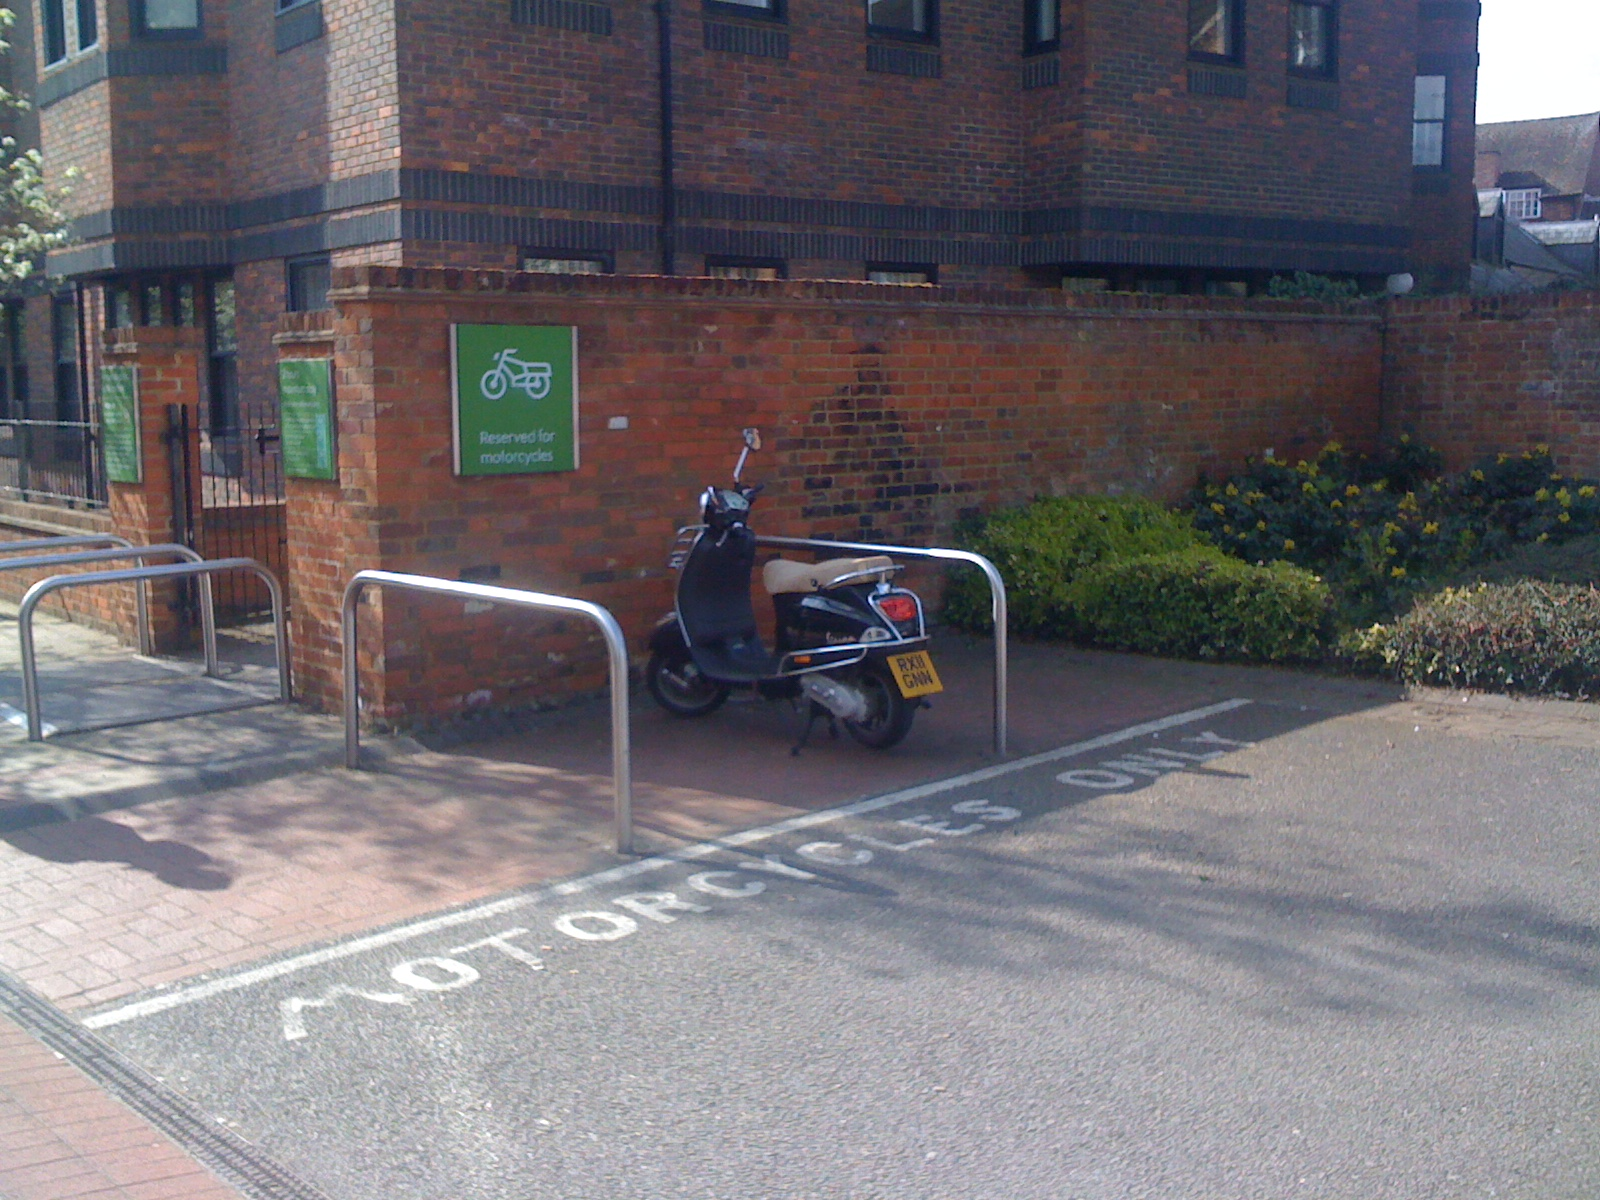 Motorcycle Parking at Waitrose Wokingham